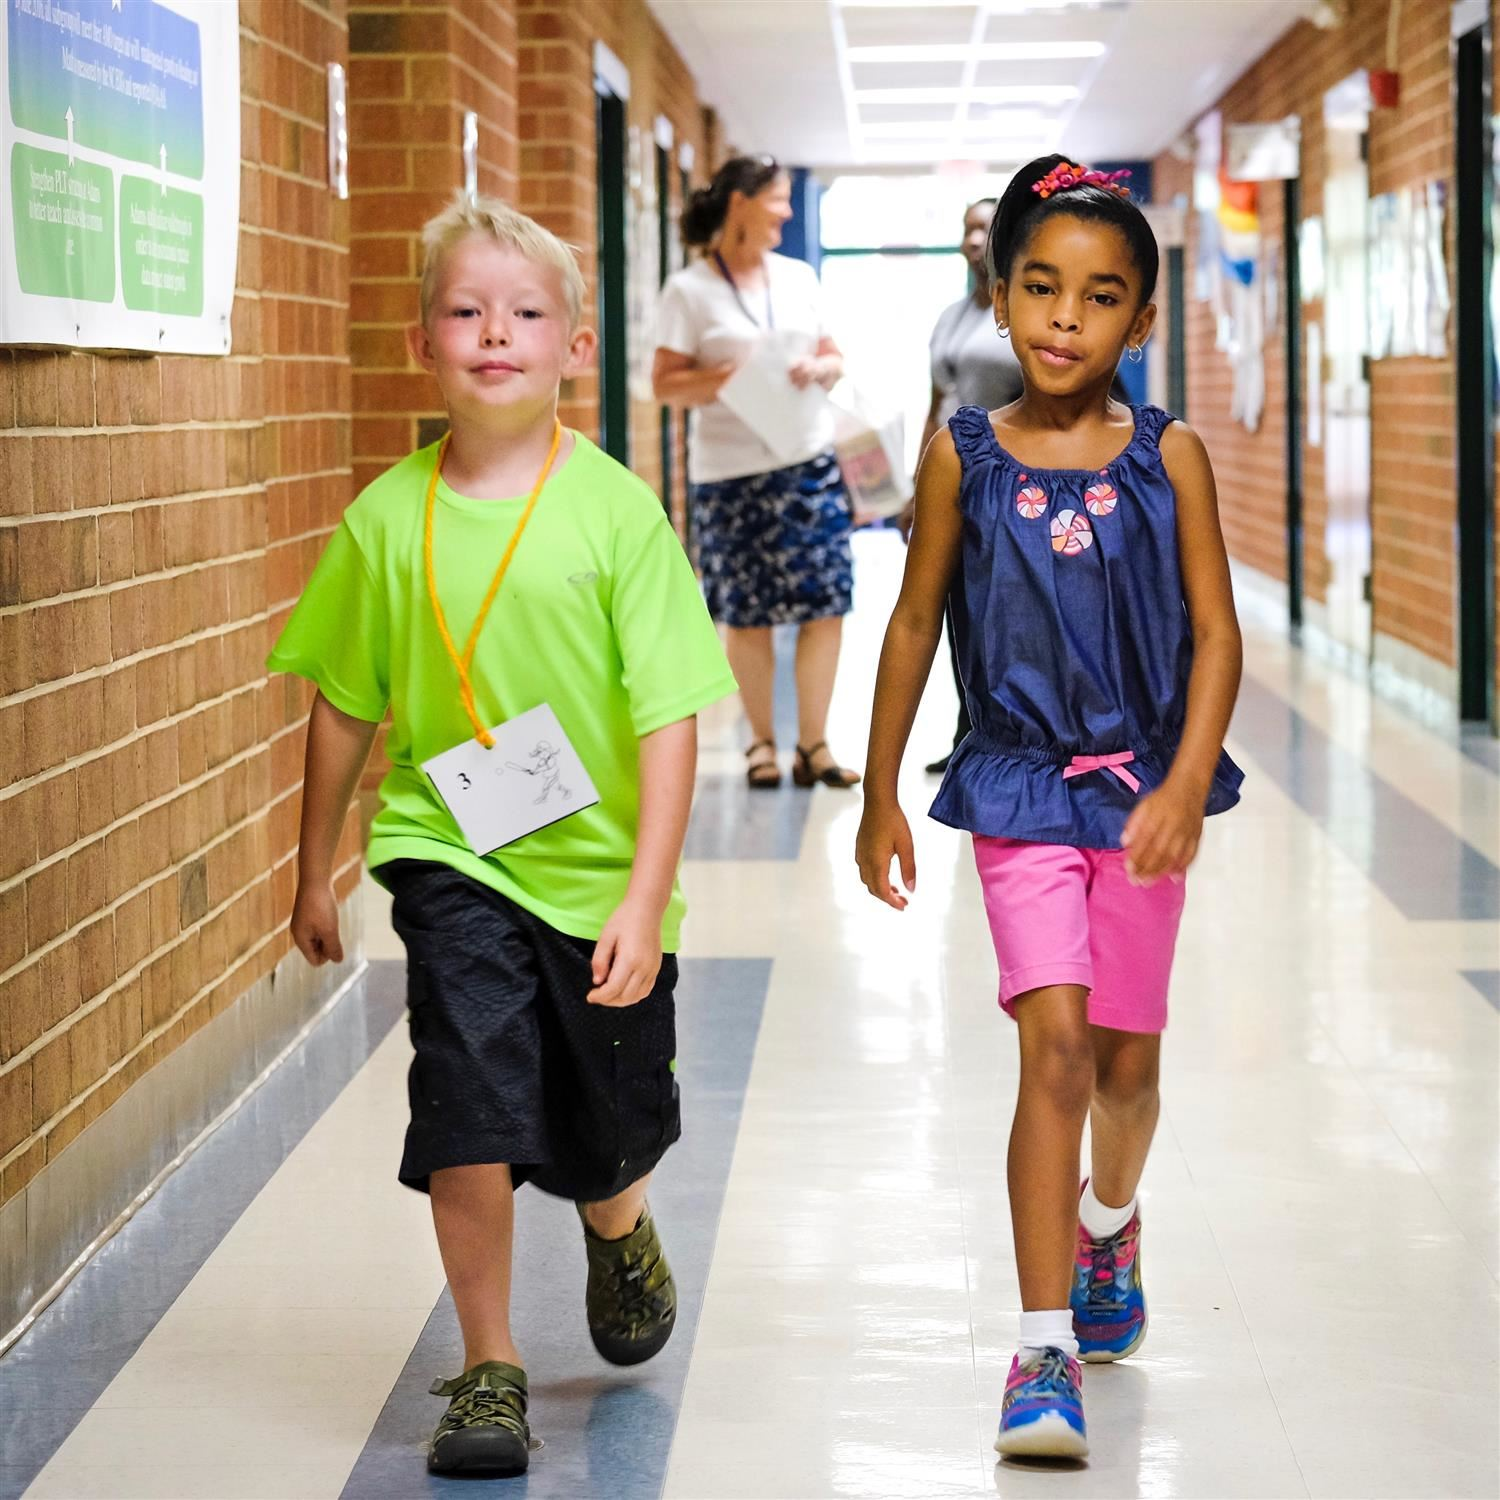 Elementary students are walking down a school hallway